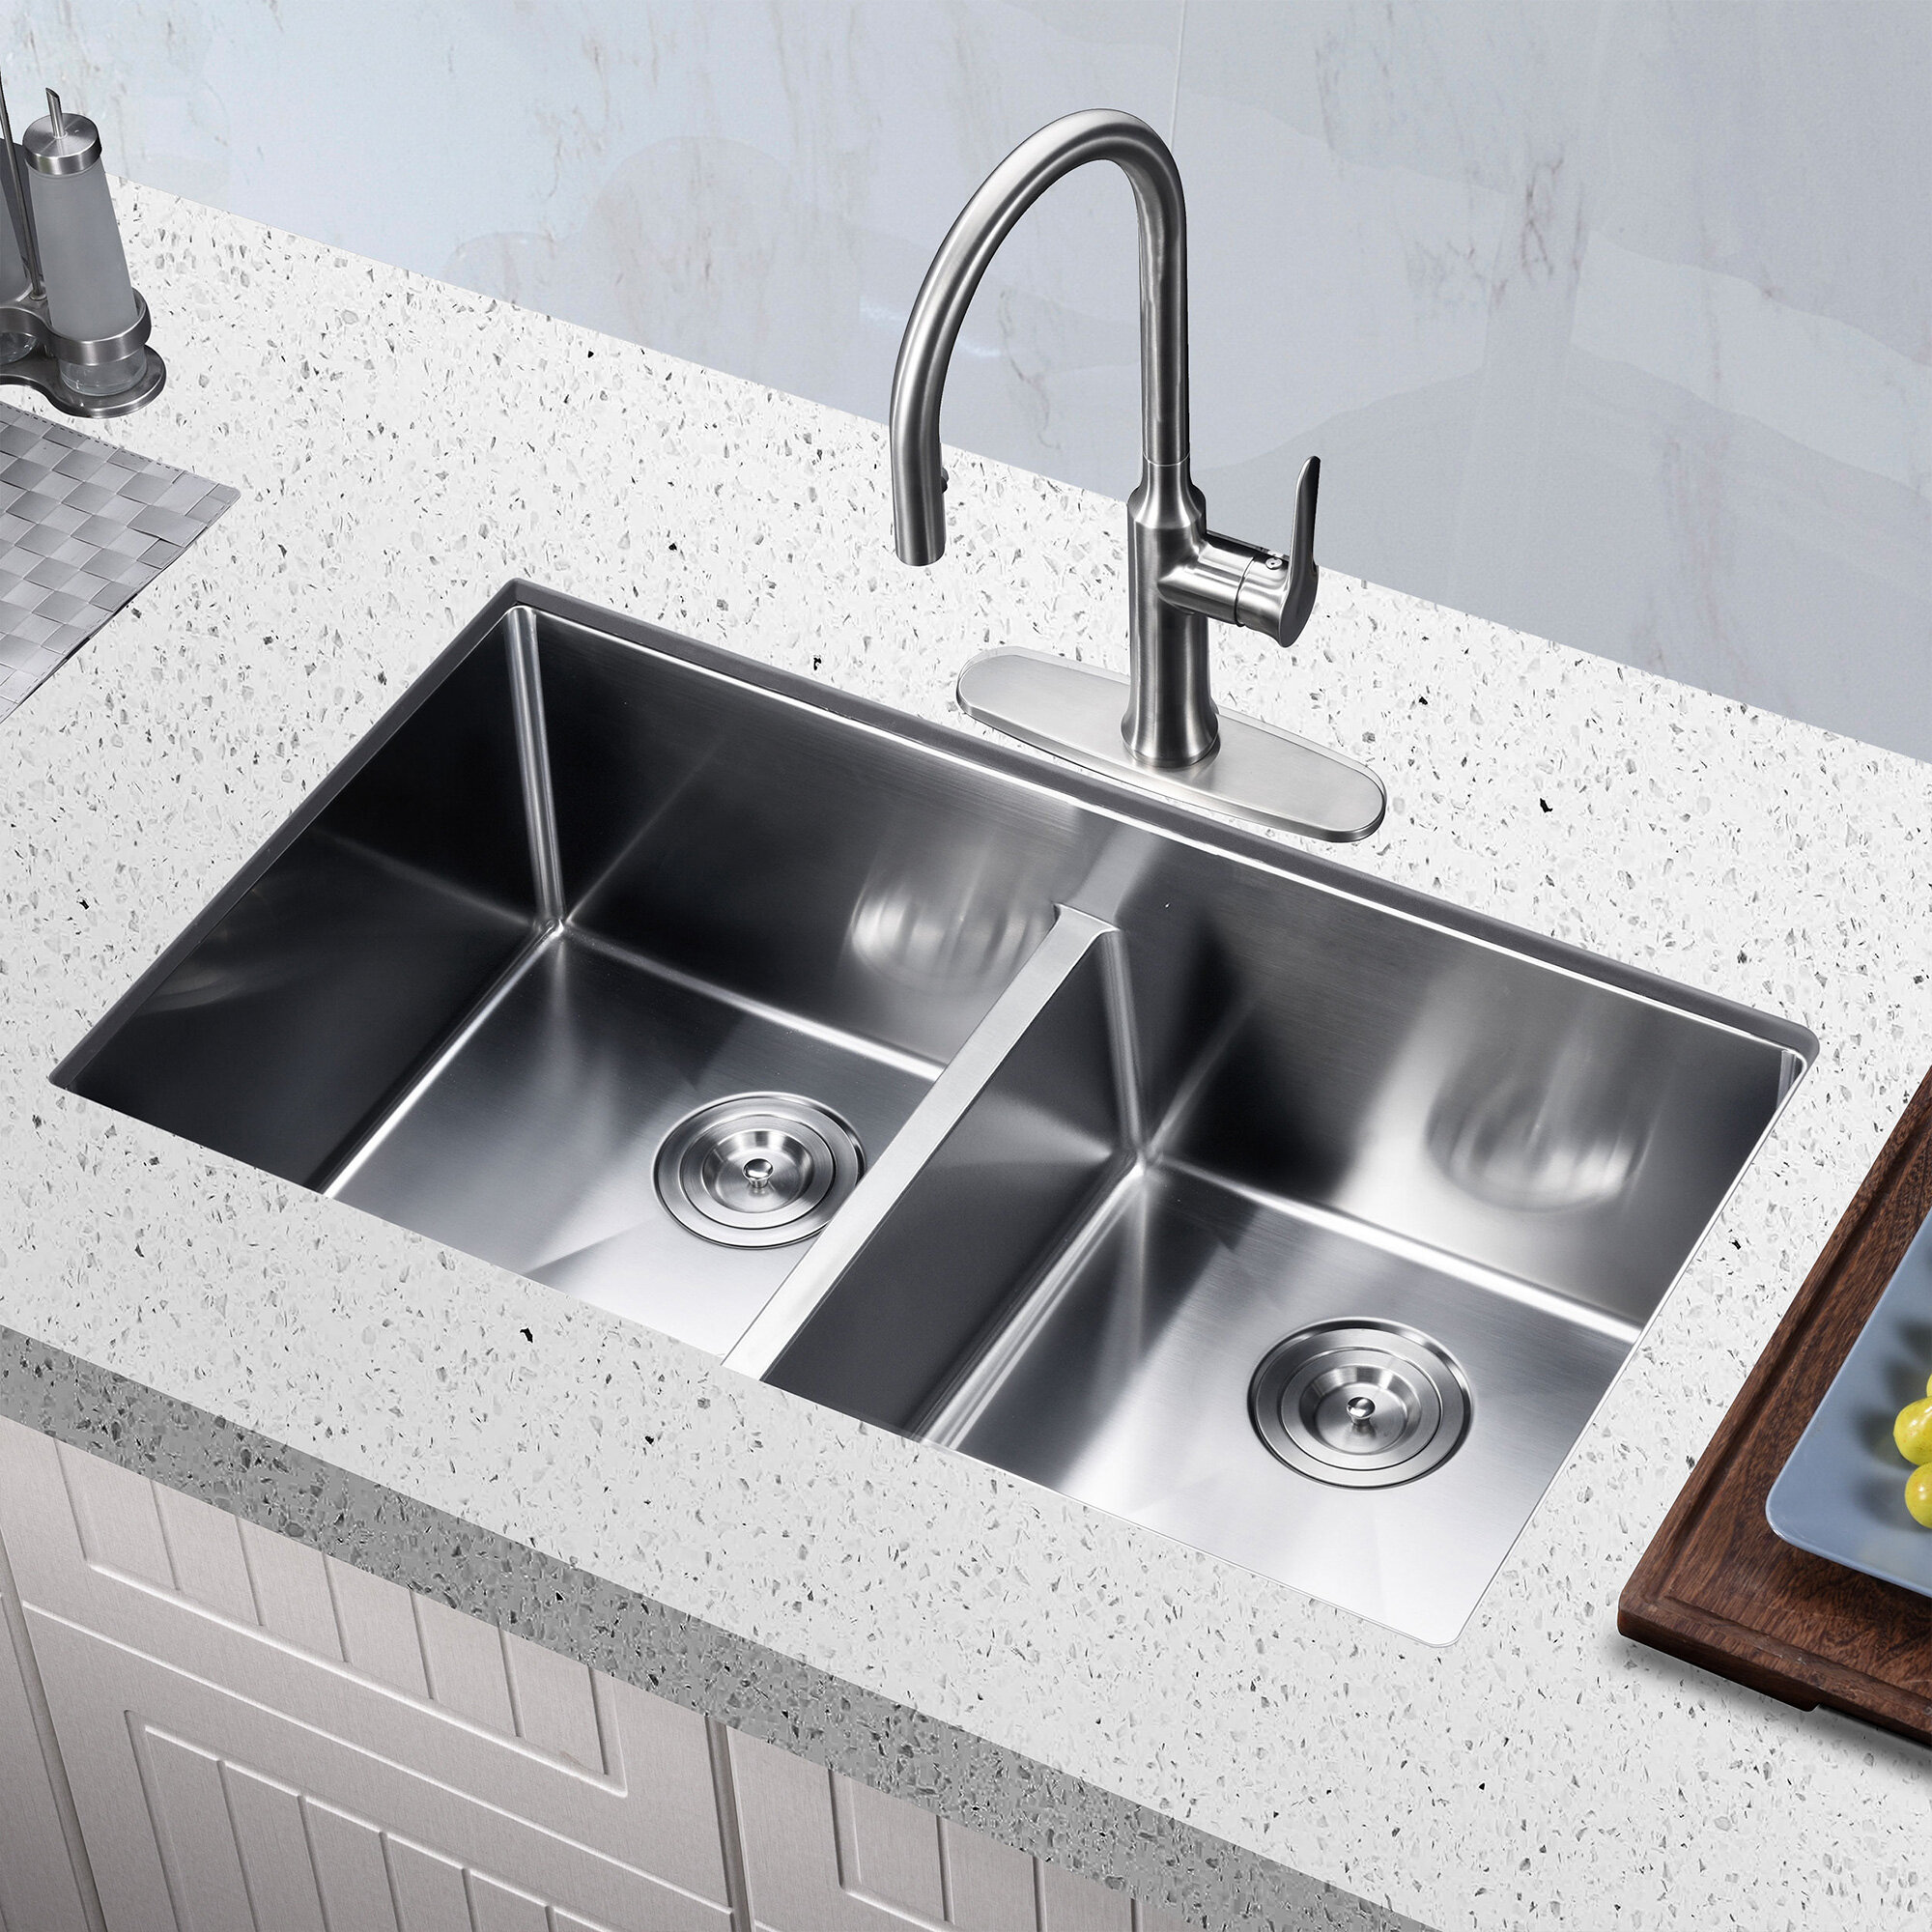 Koozzo Low Divide Stainless Steel 32 X 19 Double Basin Undermount Kitchen Sink With Basket Strainer Wayfair